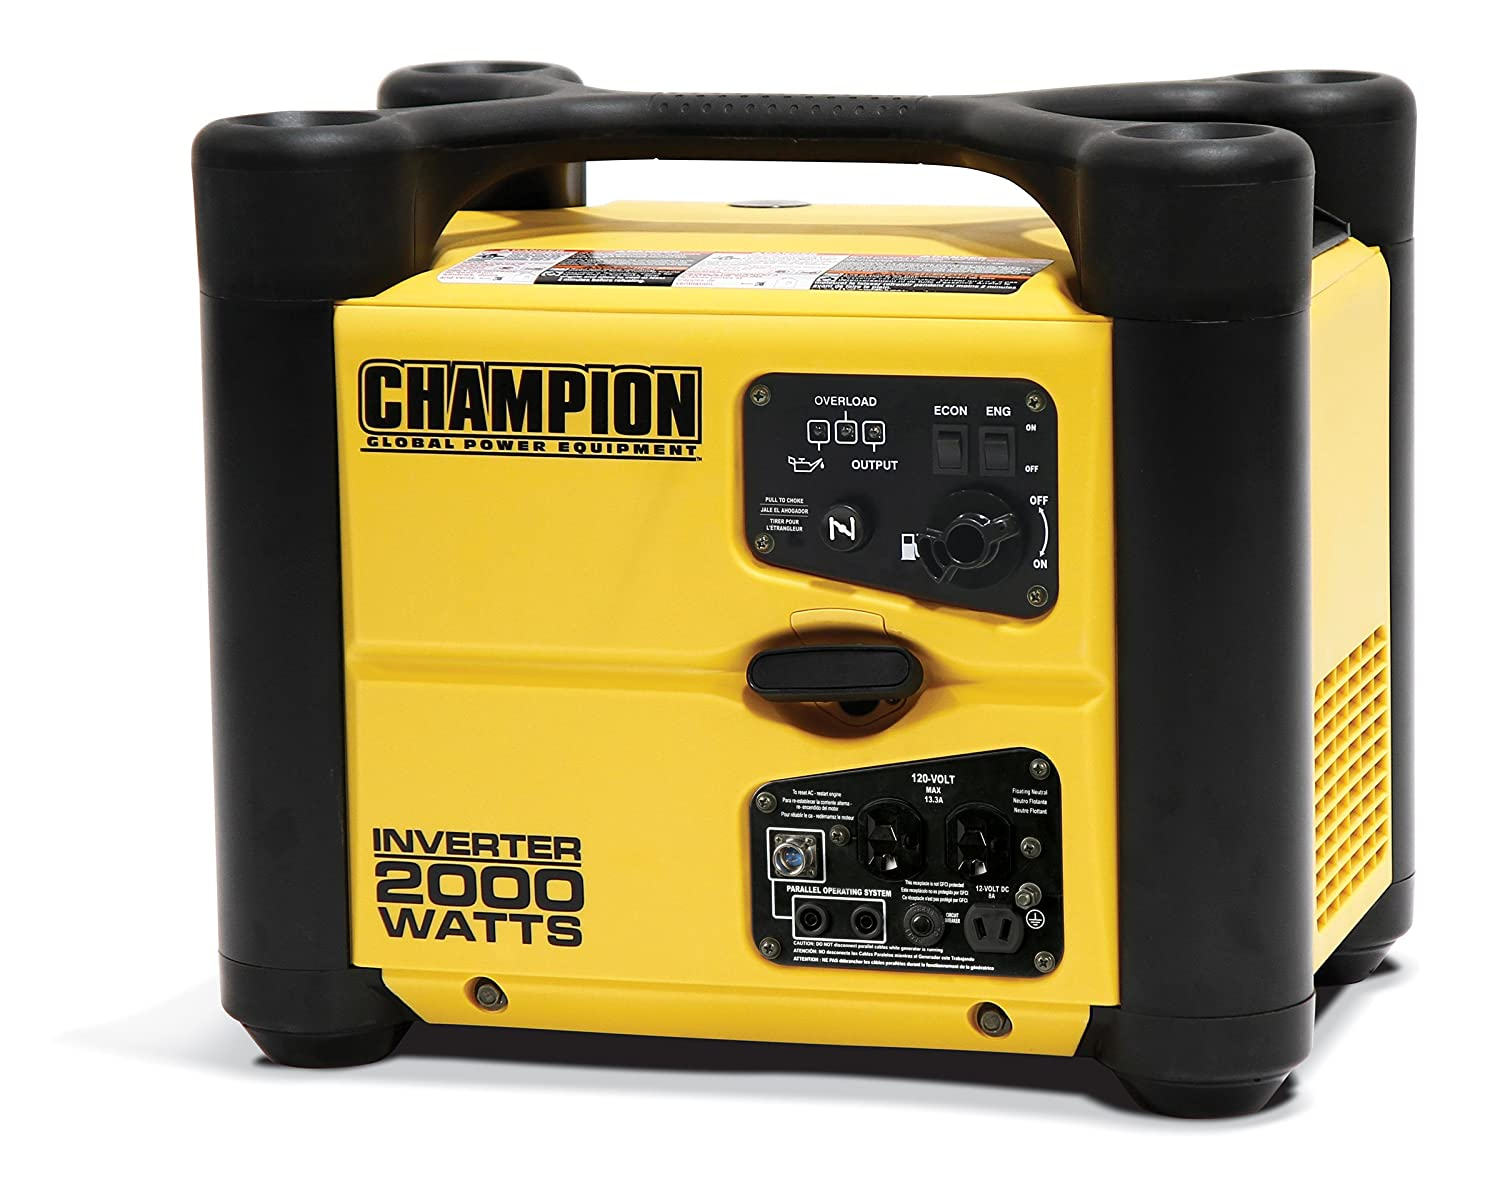 Champion 2000 Watt Stackable Portable Inverter Hw 2000i Wiring Diagram Generator Vehicle Power Inverters Garden Outdoor